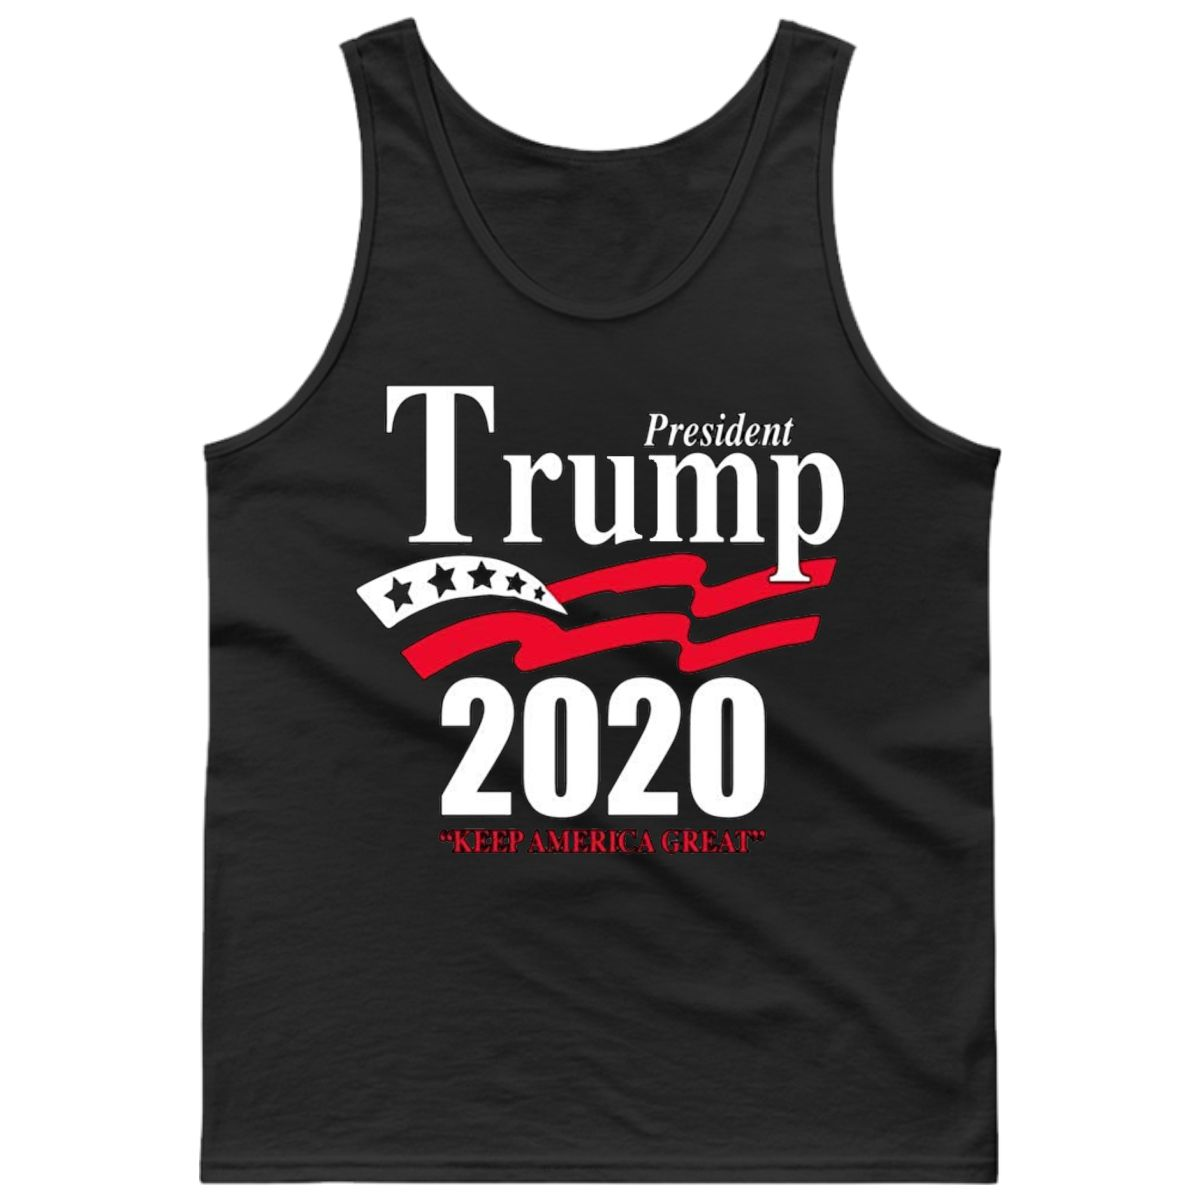 President Donald Trump 2020 MAGA Liberal Keep America Great New Mens T-shirt